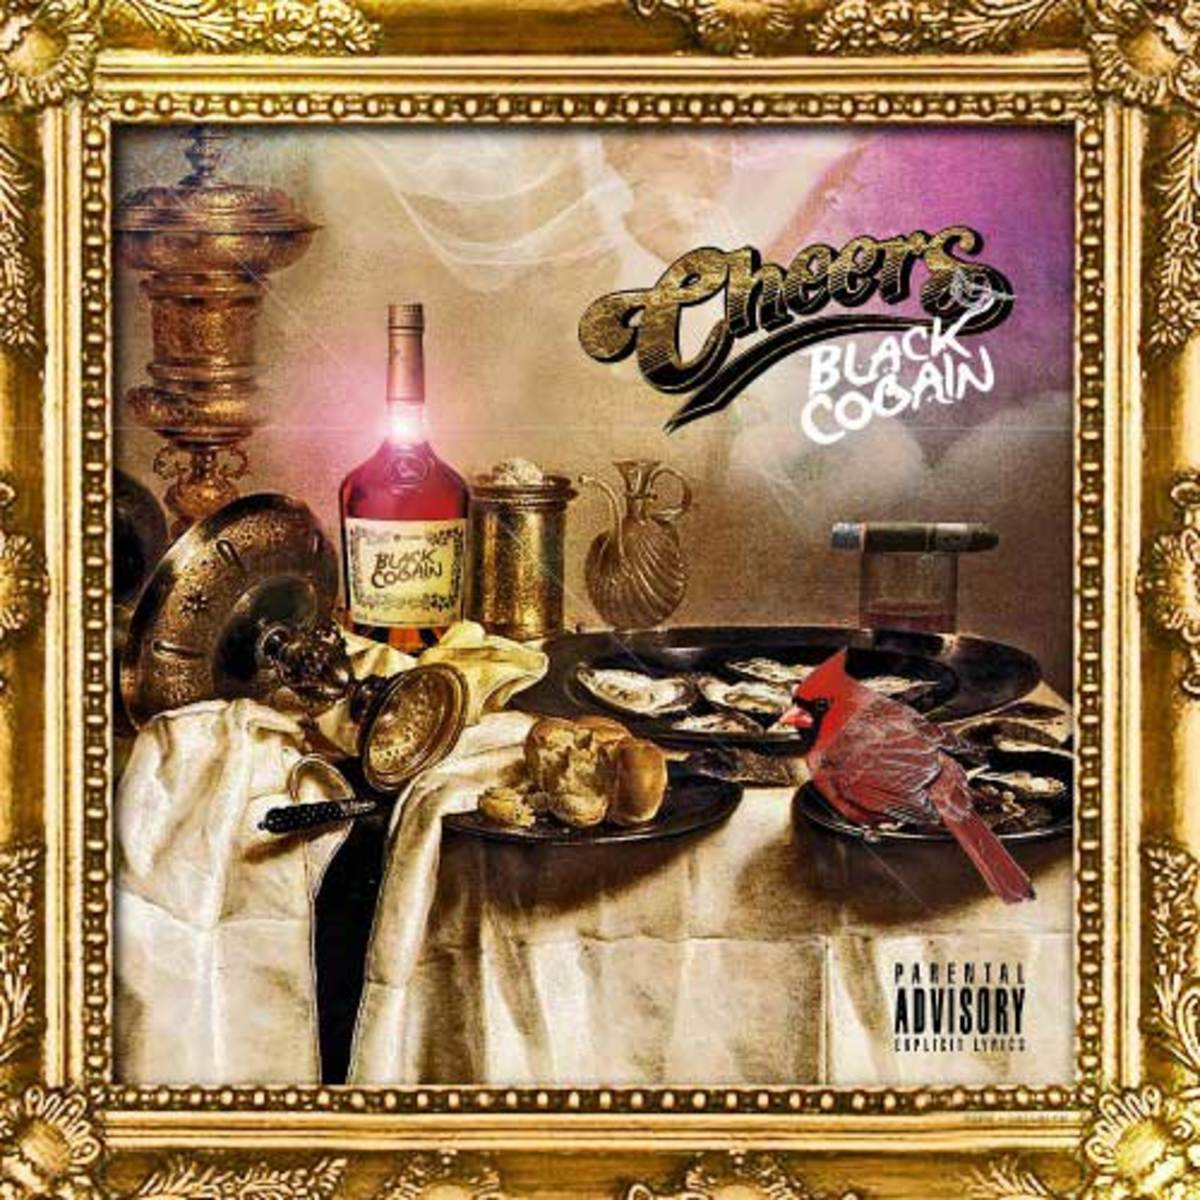 blackcobain-cheers.jpg